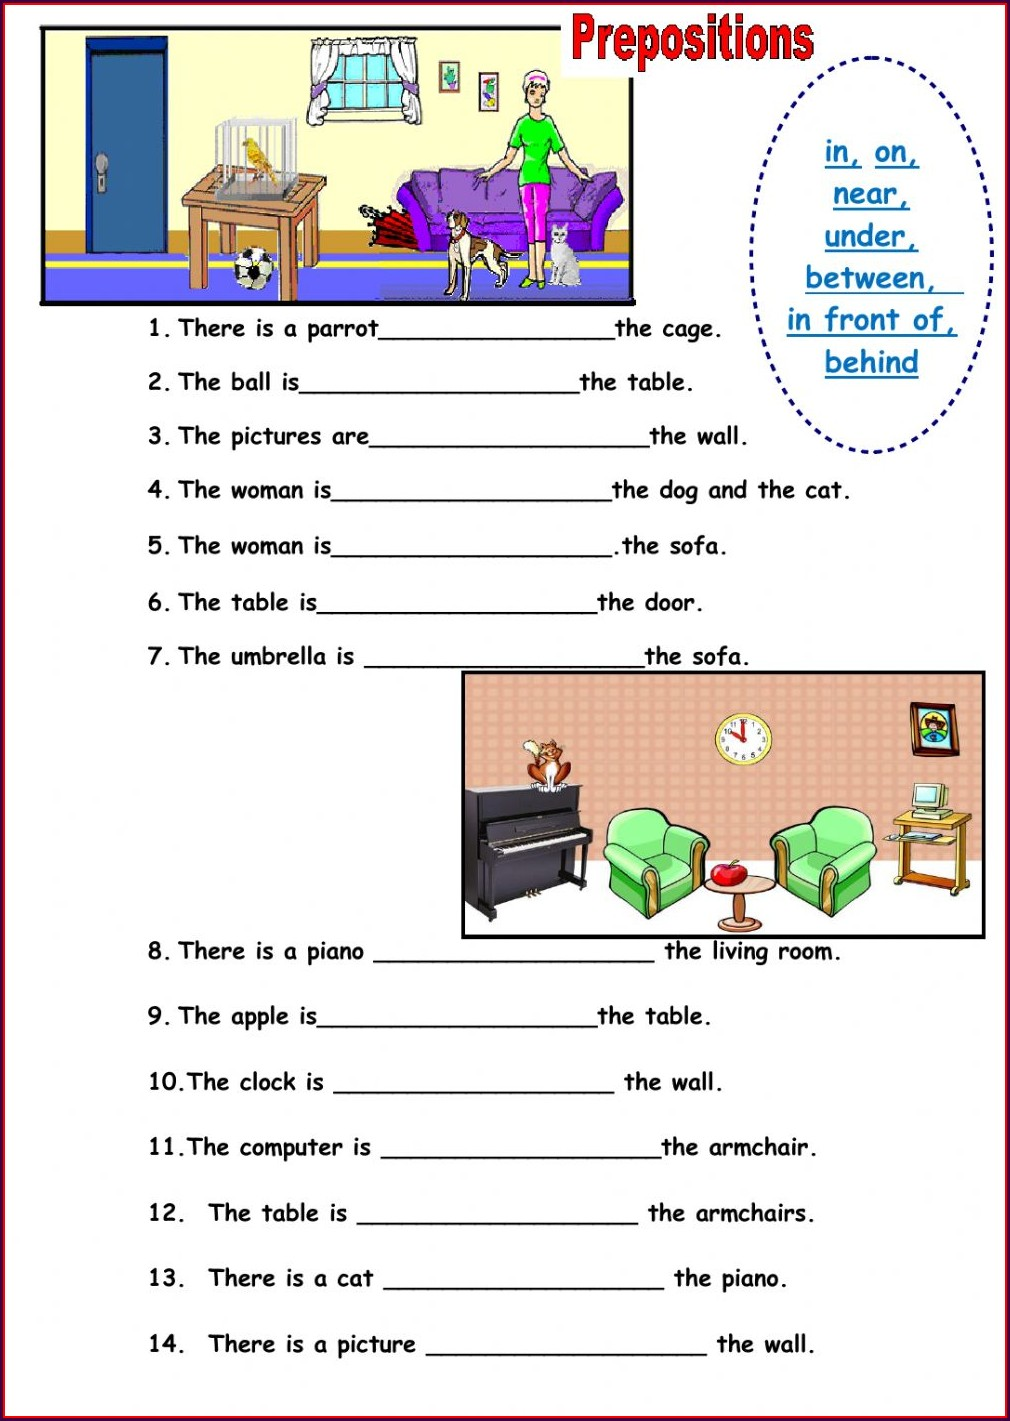 Grade 3 English Worksheets On Prepositions